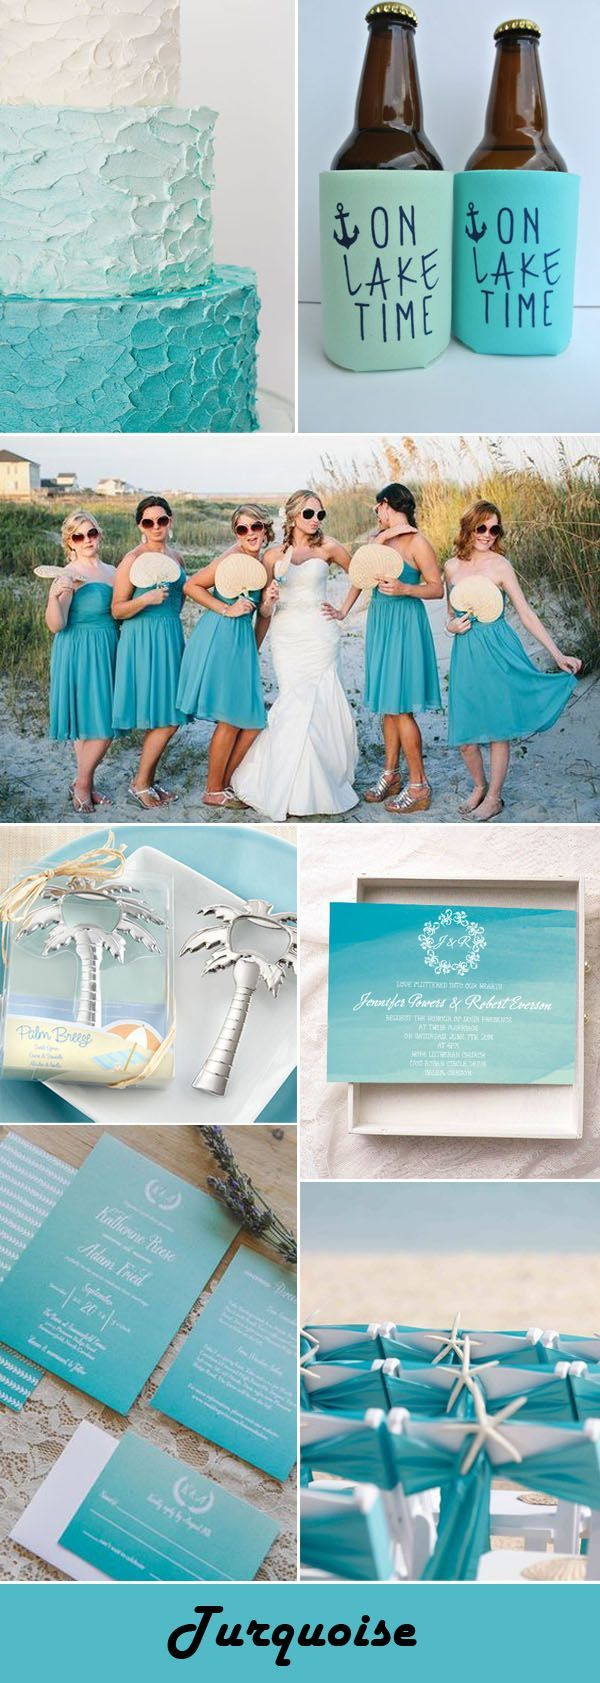 146 Best Beach Wedding Images On Pinterest Beach Weddings Beach